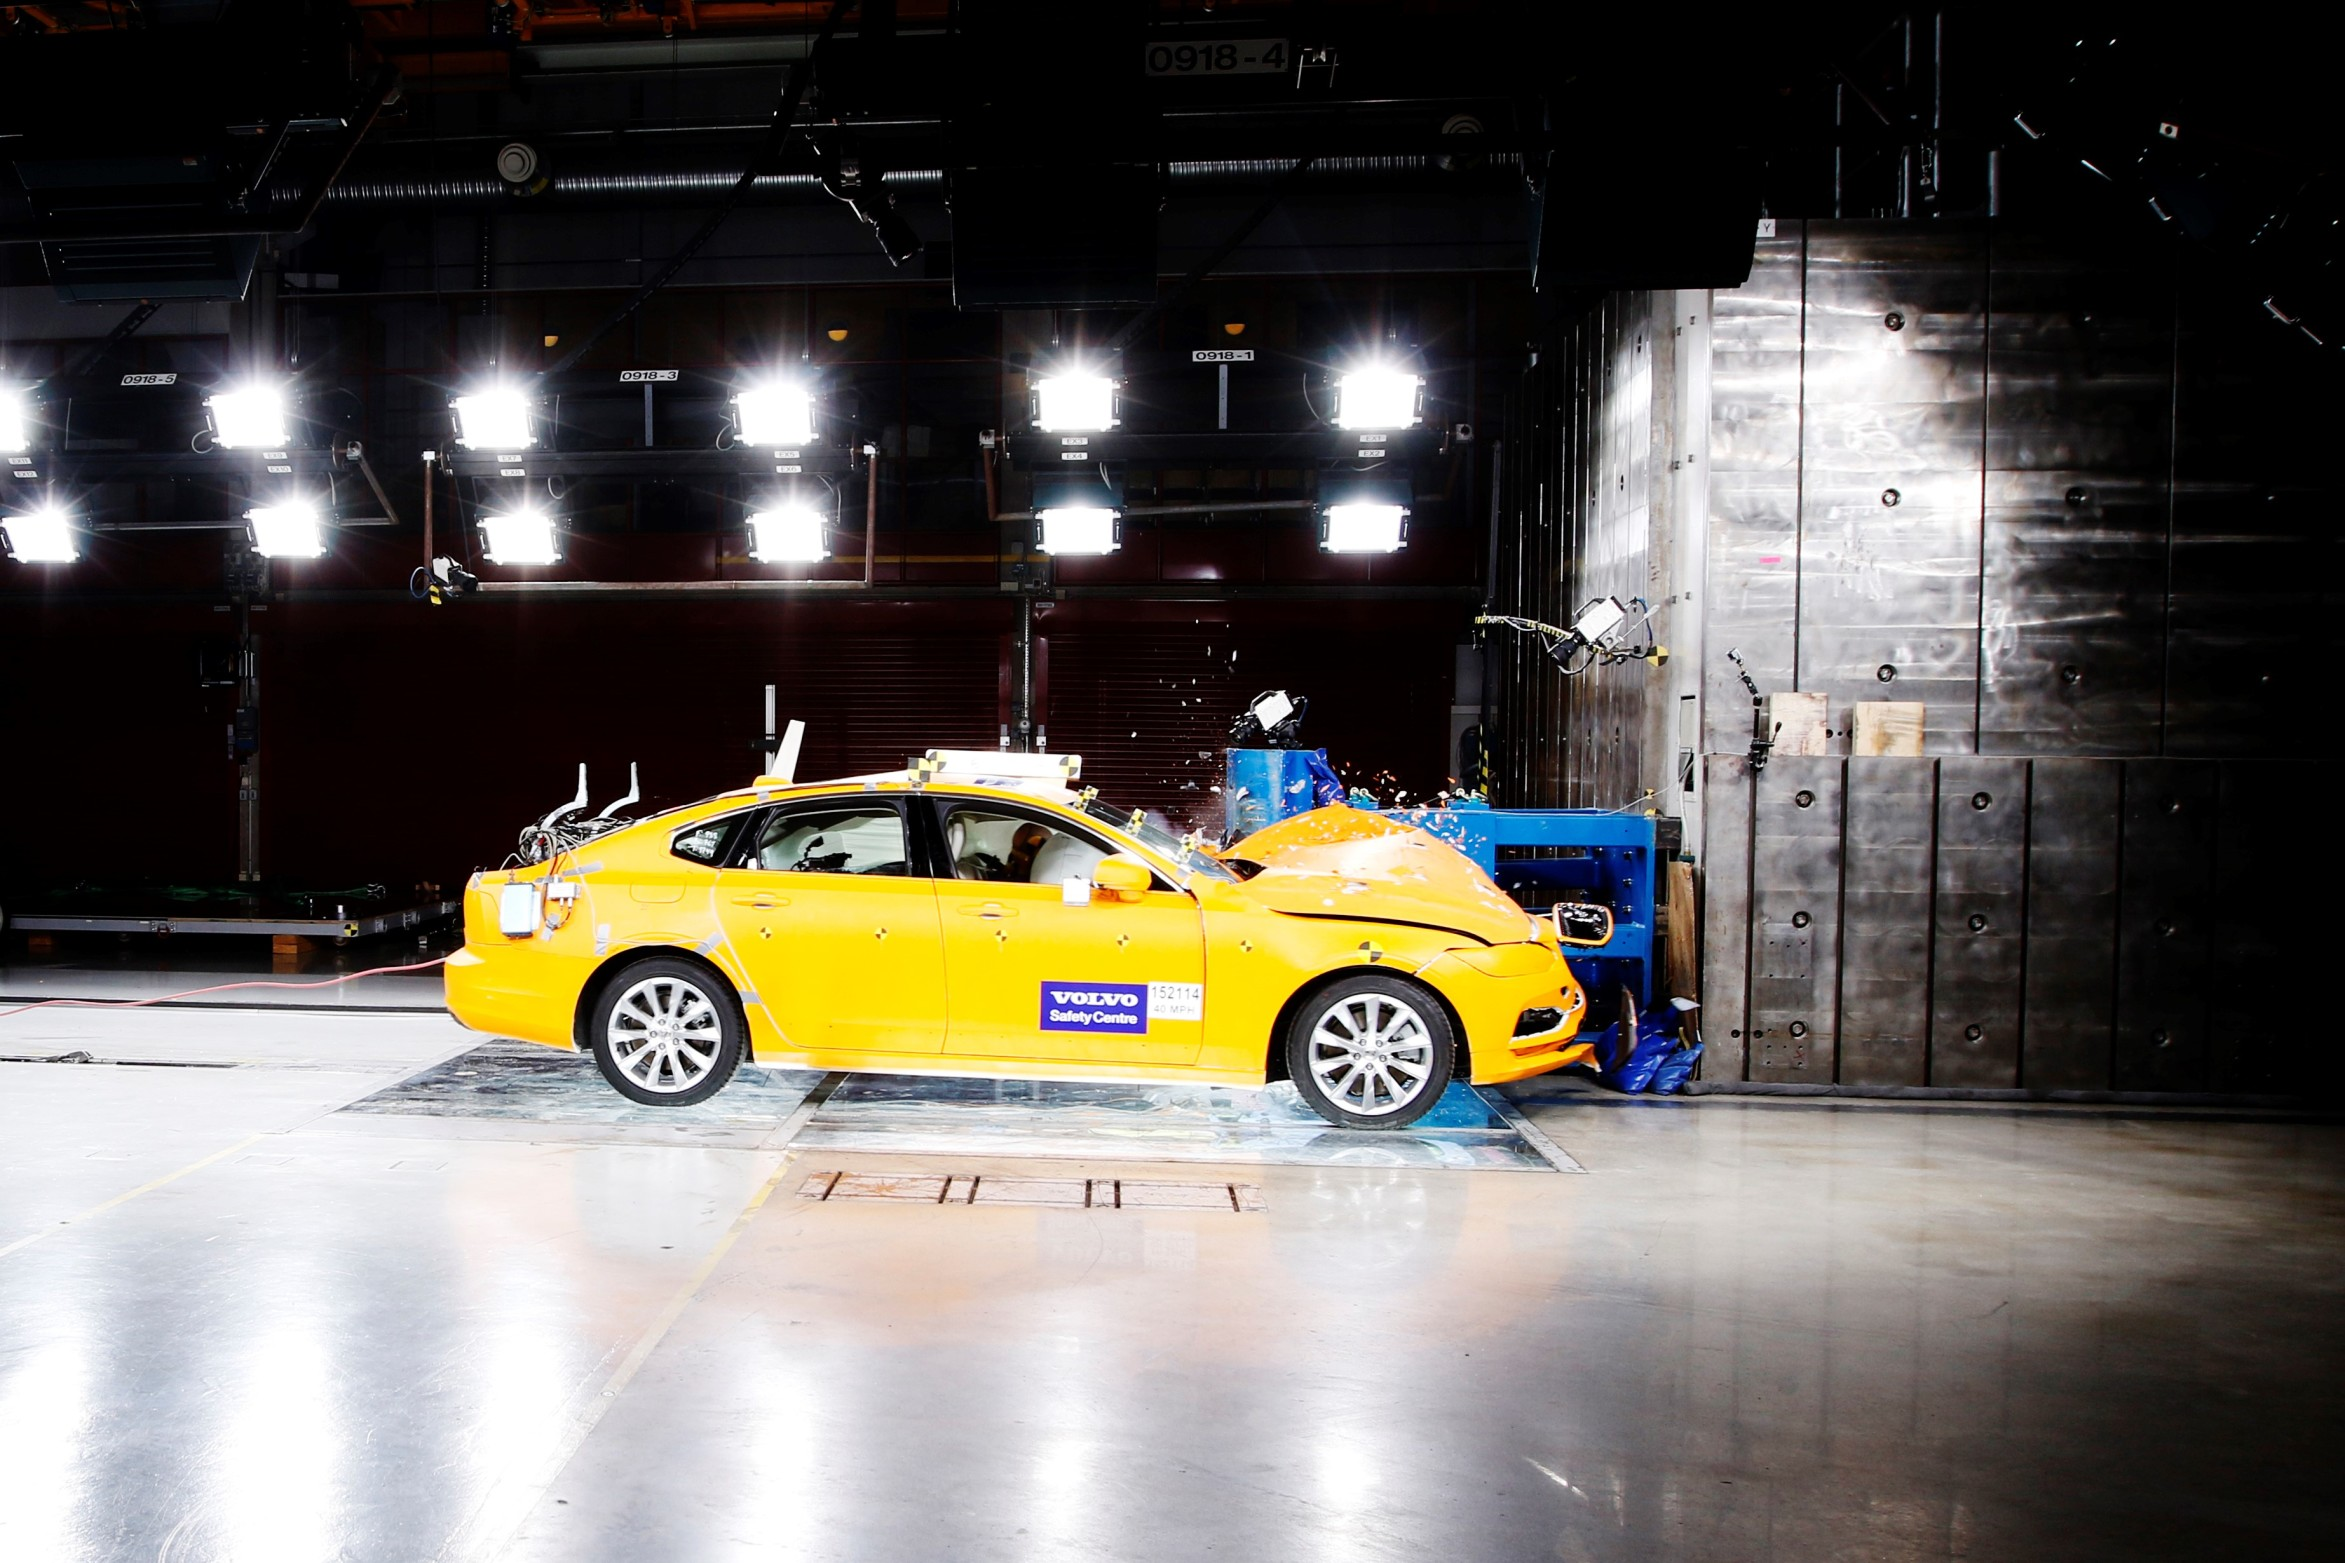 Volvo celebrates 20 years of crashing cars in the name of safety